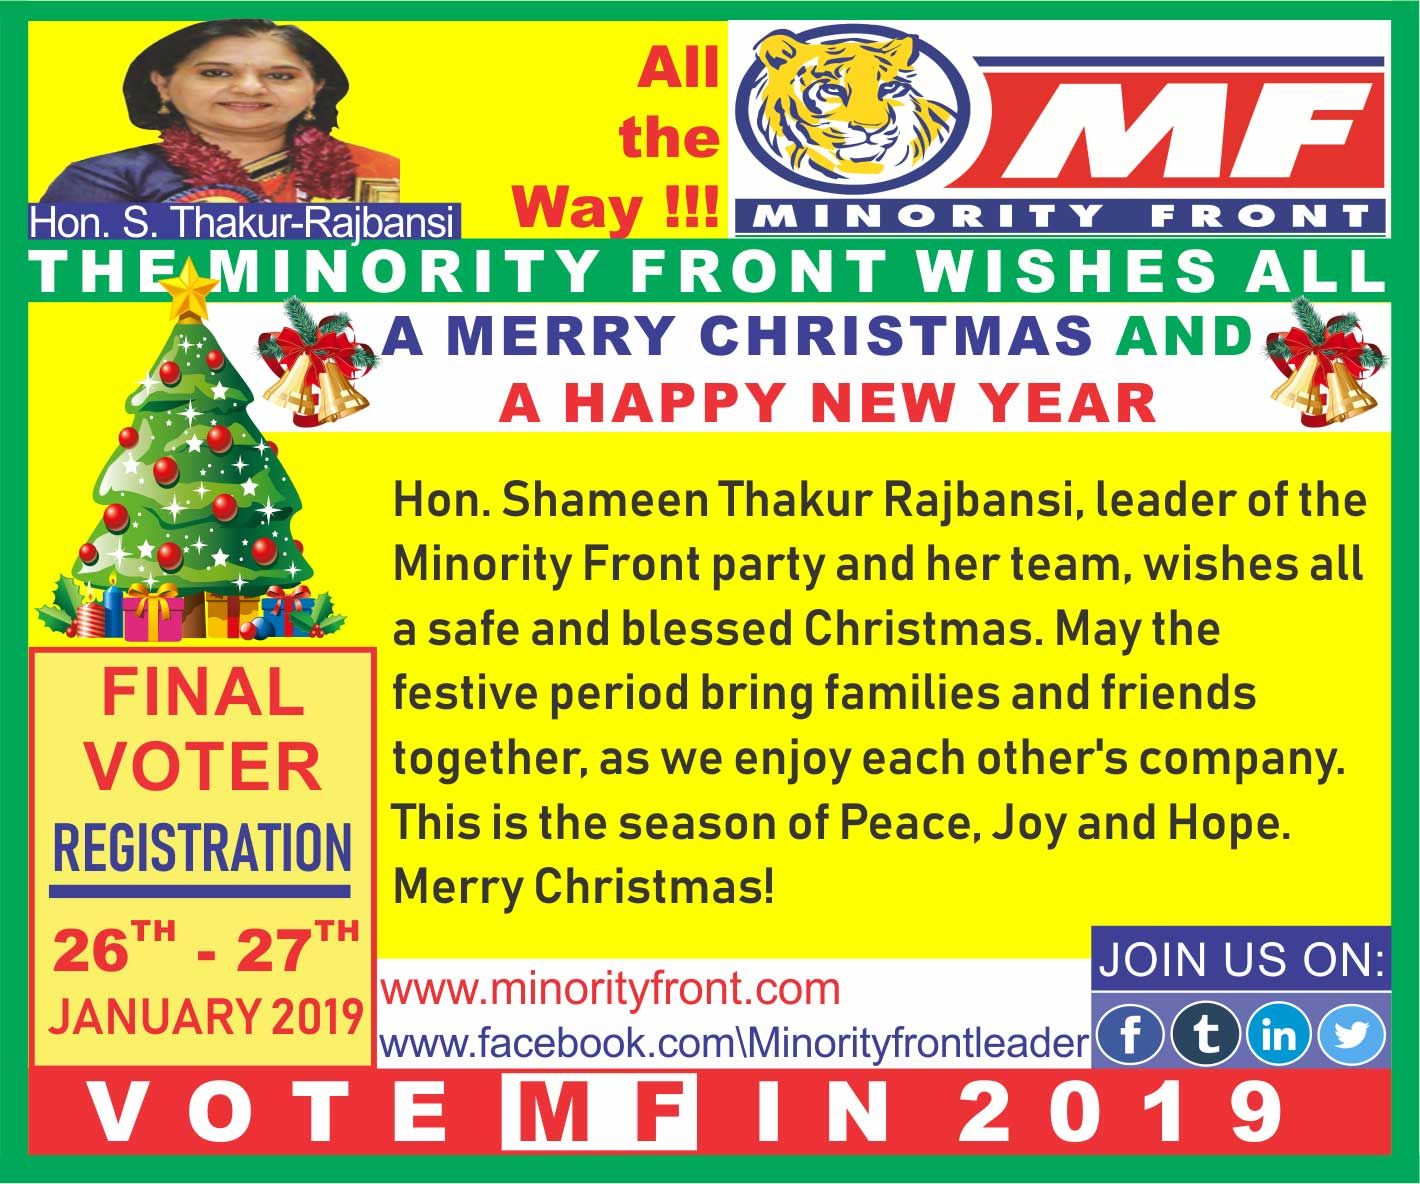 The Minority Front Wishes All a Merry Christmas and a Happy New Year